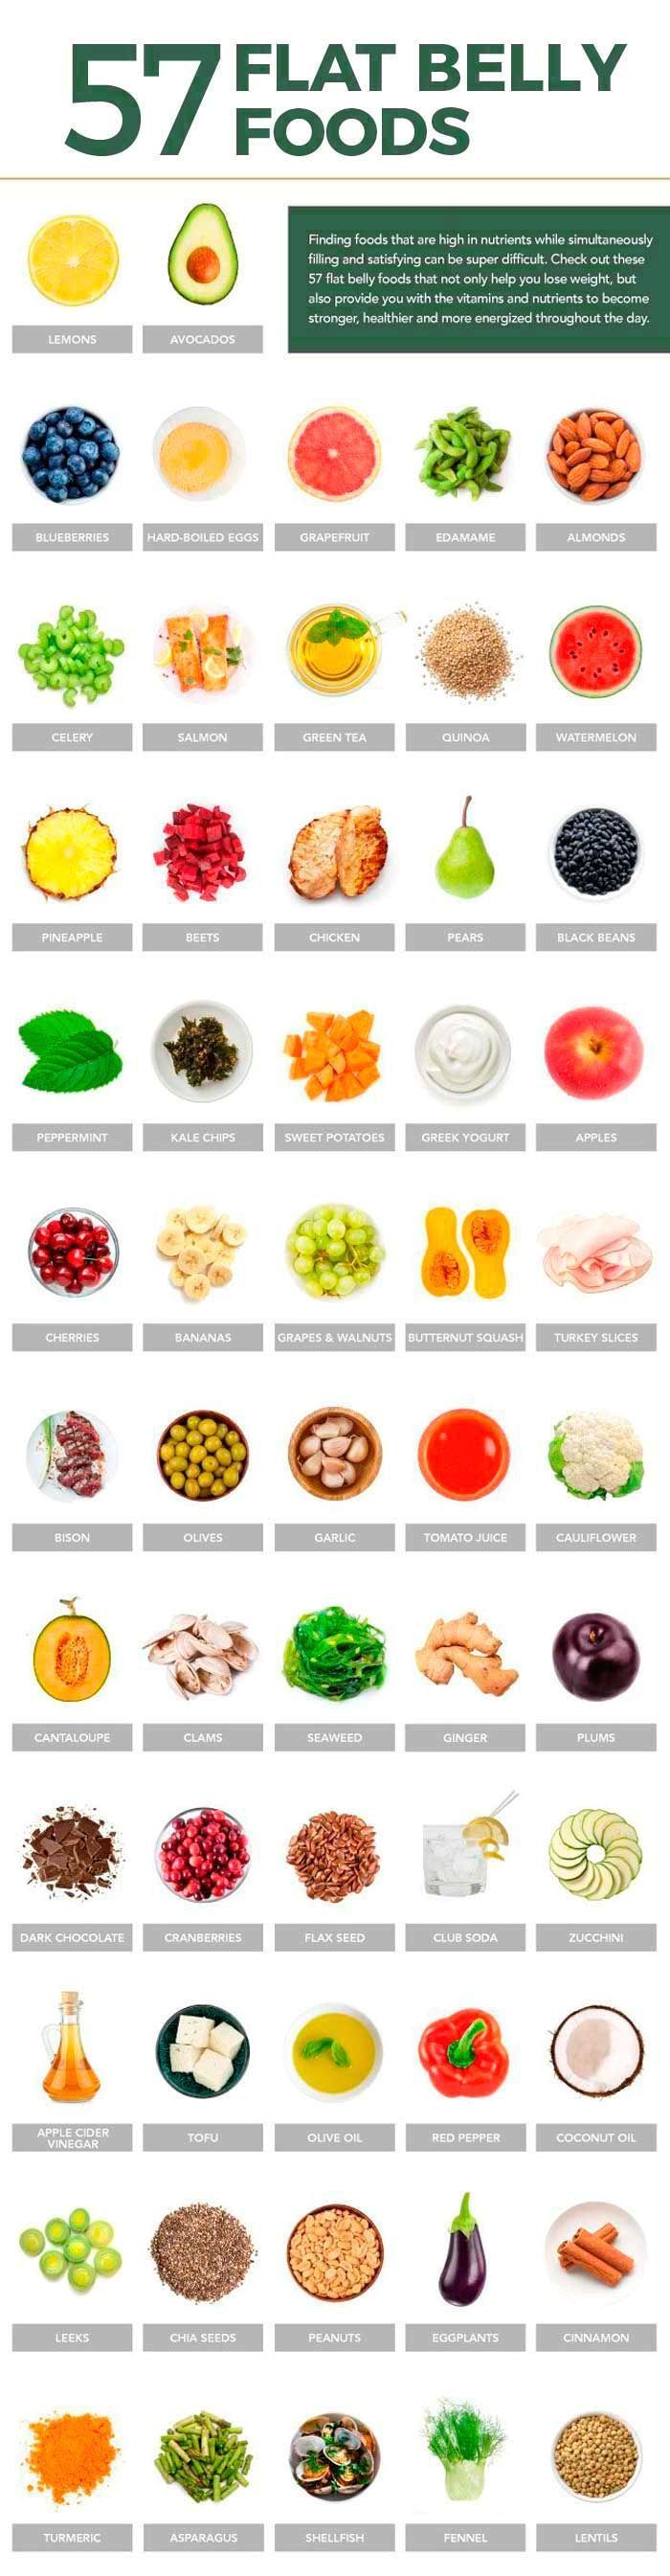 Fat burning foods. Flat belly foods